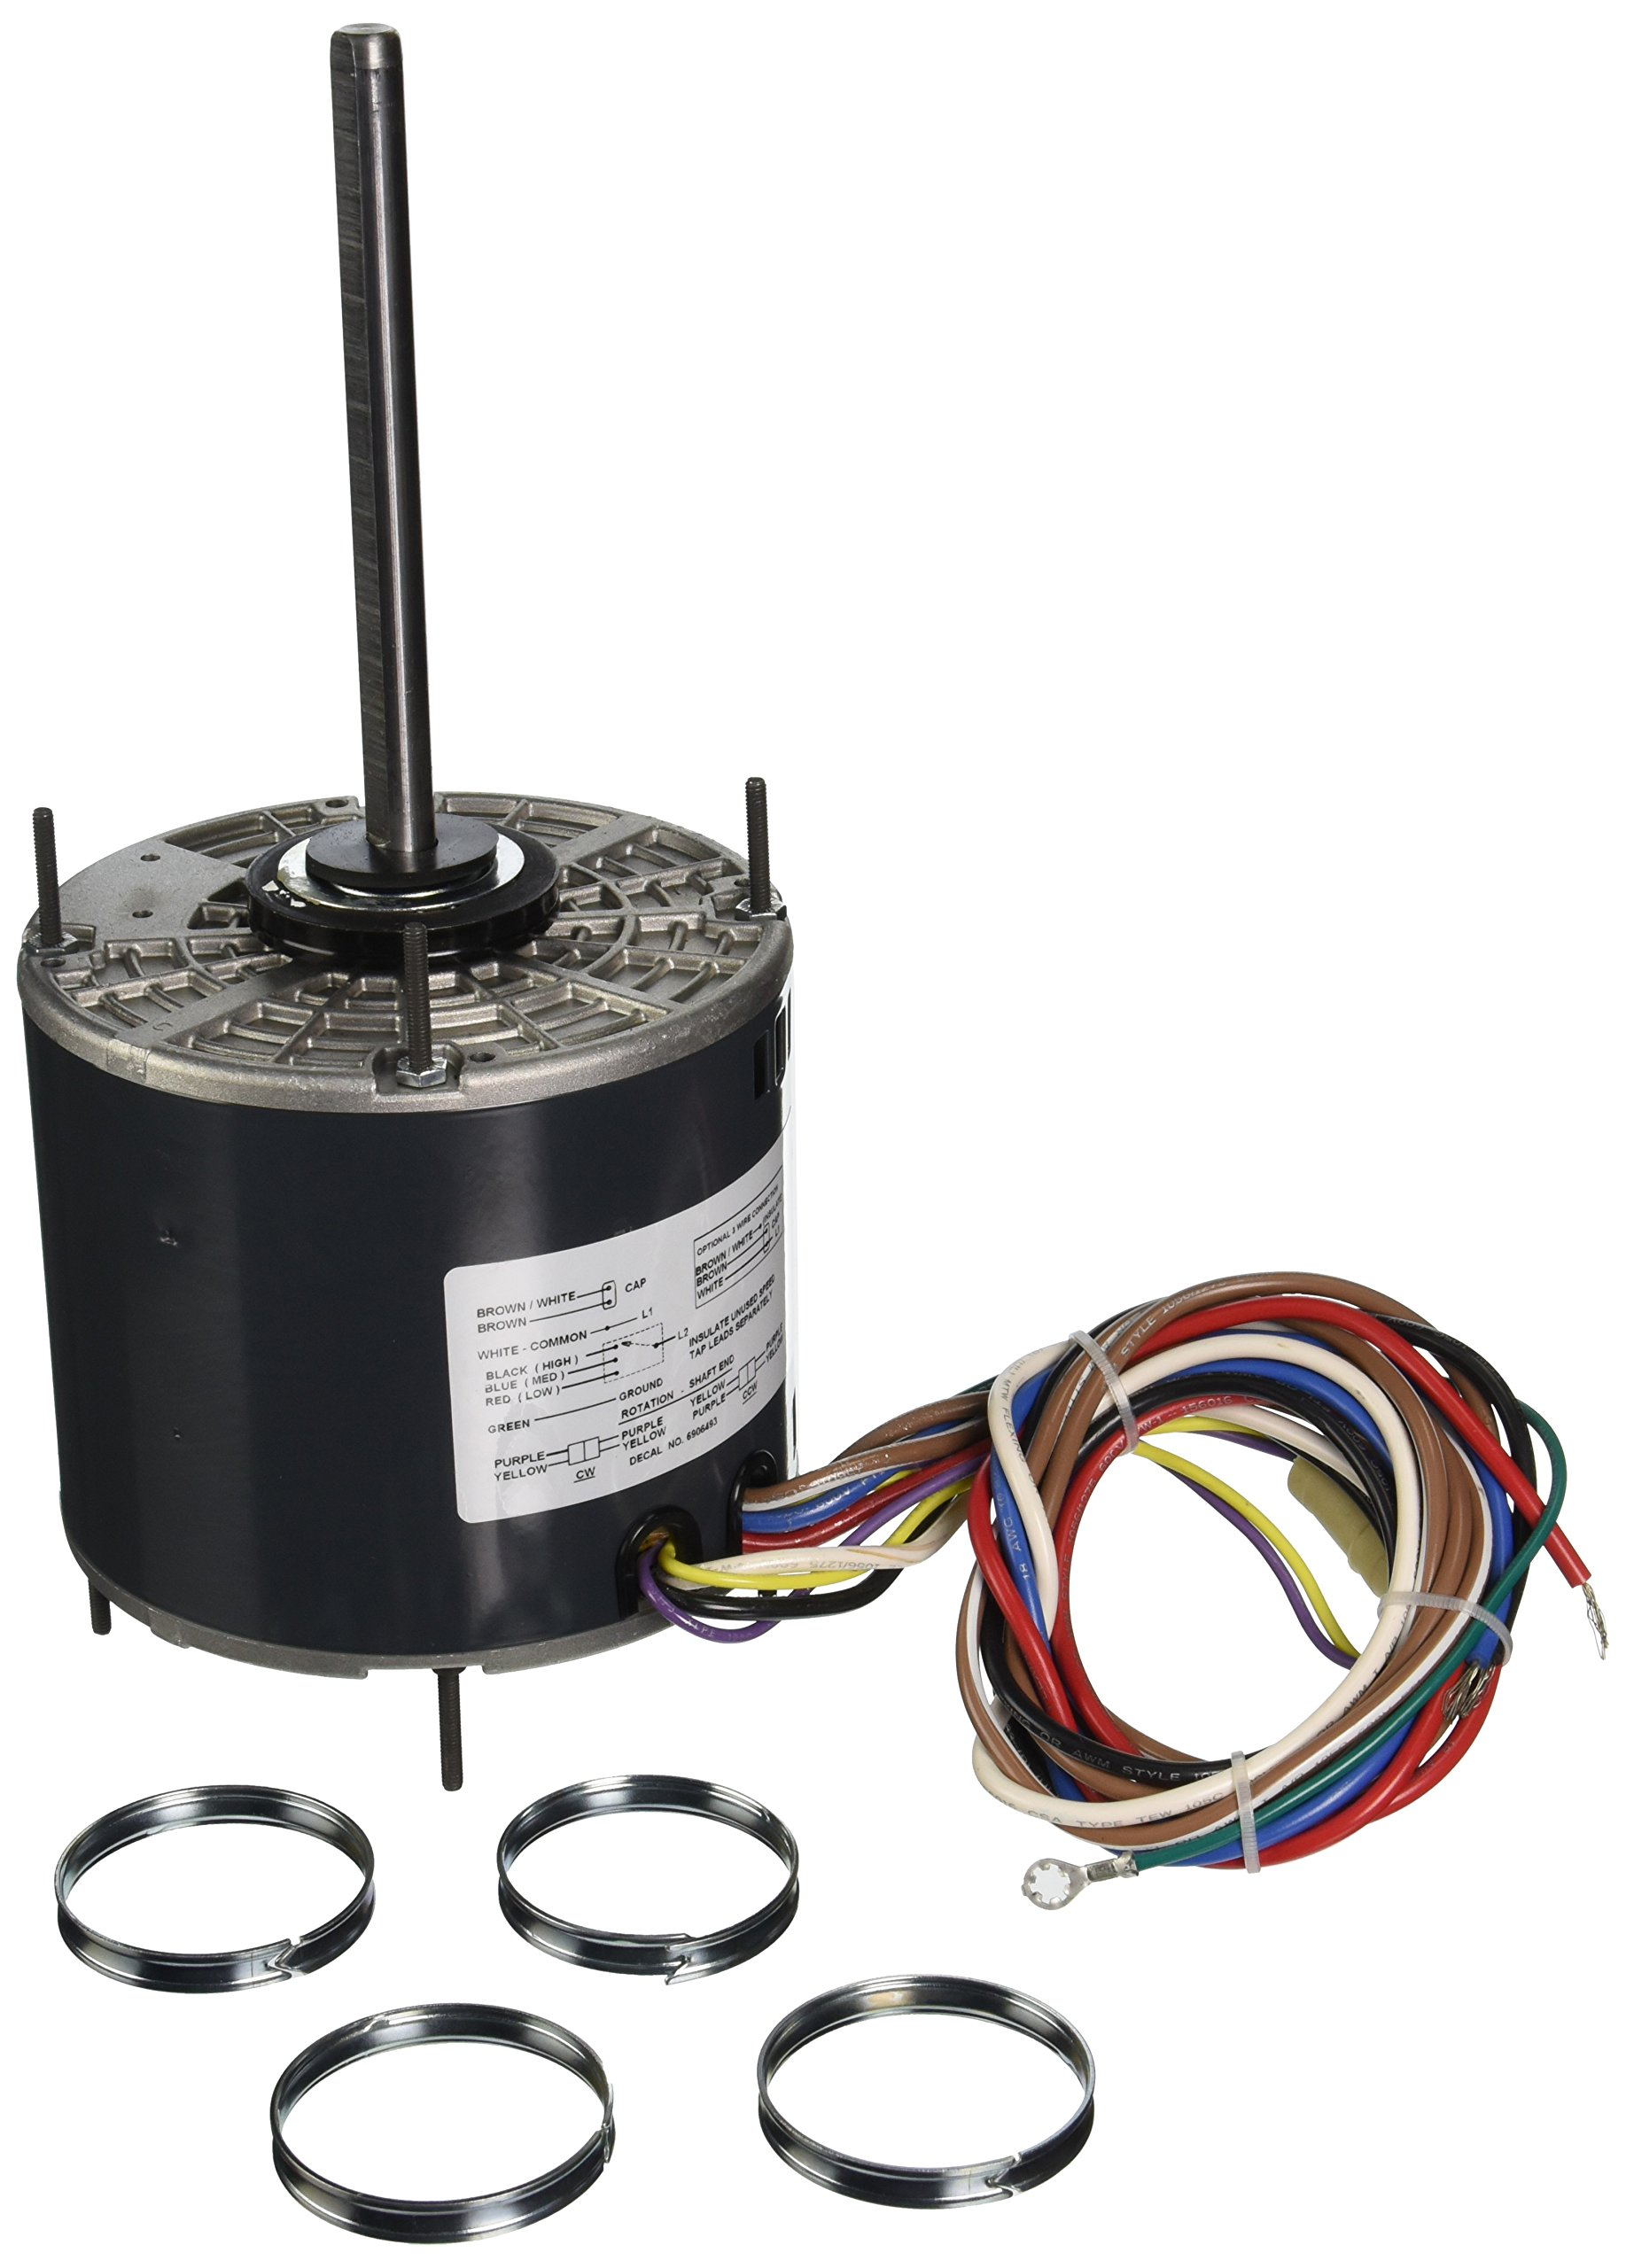 Marathon X011 48Y Frame Open Air Over 48A17O2005 Condenser Fan Motor 1/3 hp, 1625 rpm, 208-230 VAC, 1 Phase, 3 Speeds, Ball Bearing, Permanent Split Capacitor, Thru-Bolt